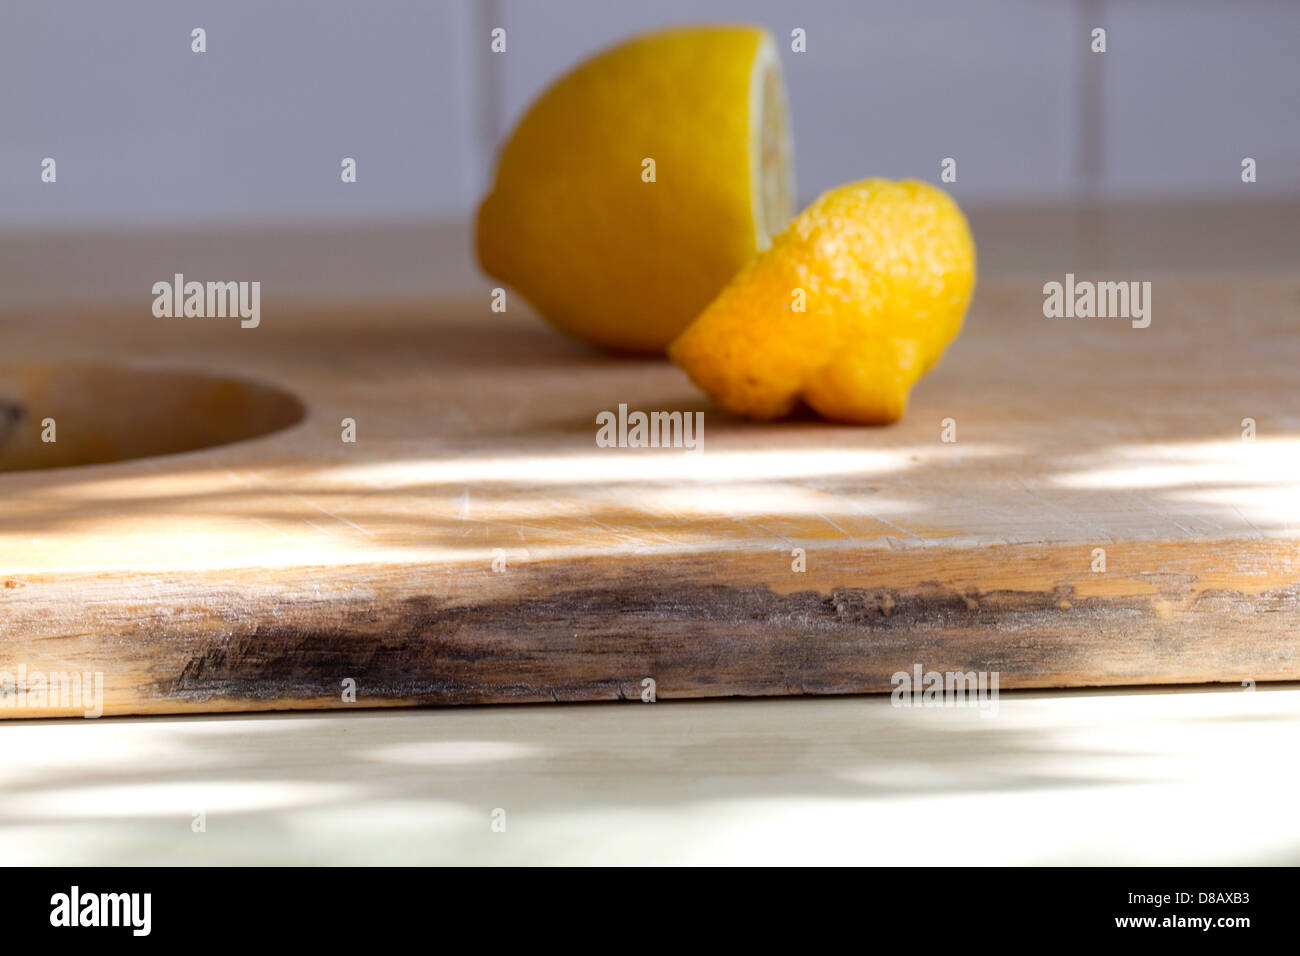 damp wood on wooden kitchen chopping board with mildew - Stock Image